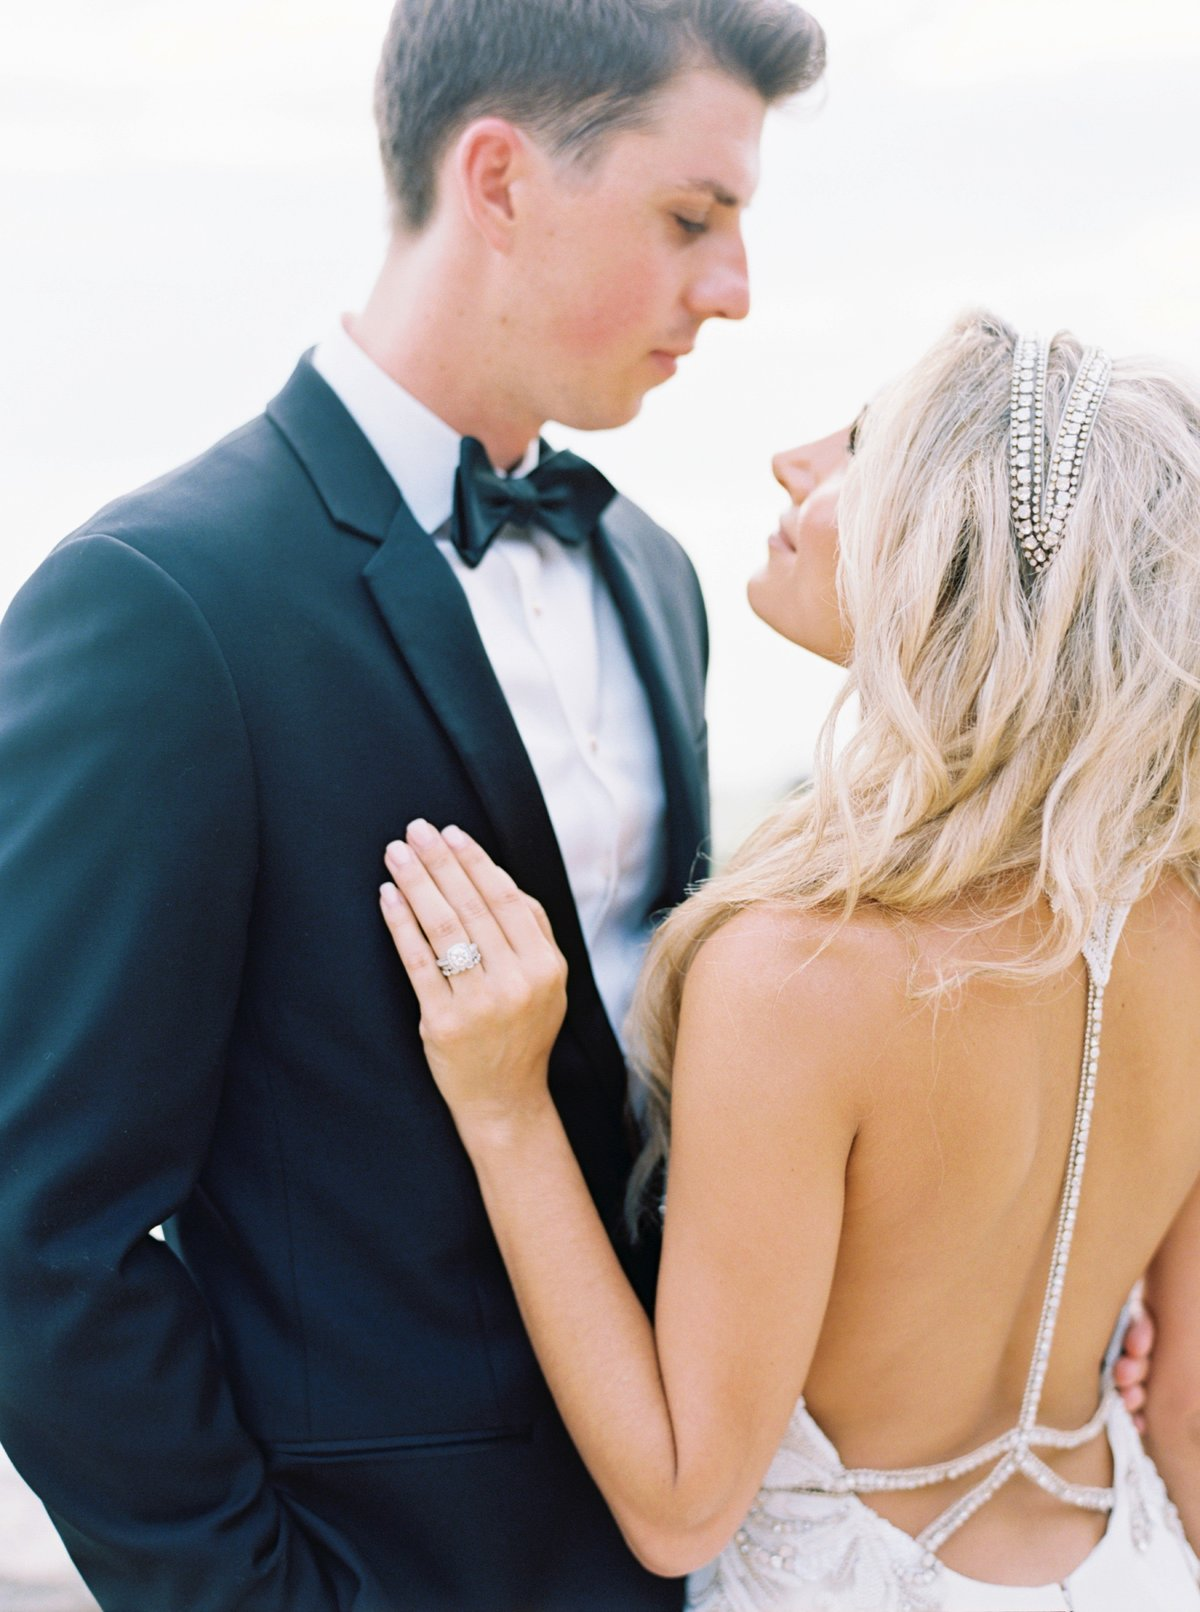 nicoleclareyphotography_evan+jeff_laguna beach_wedding_0020